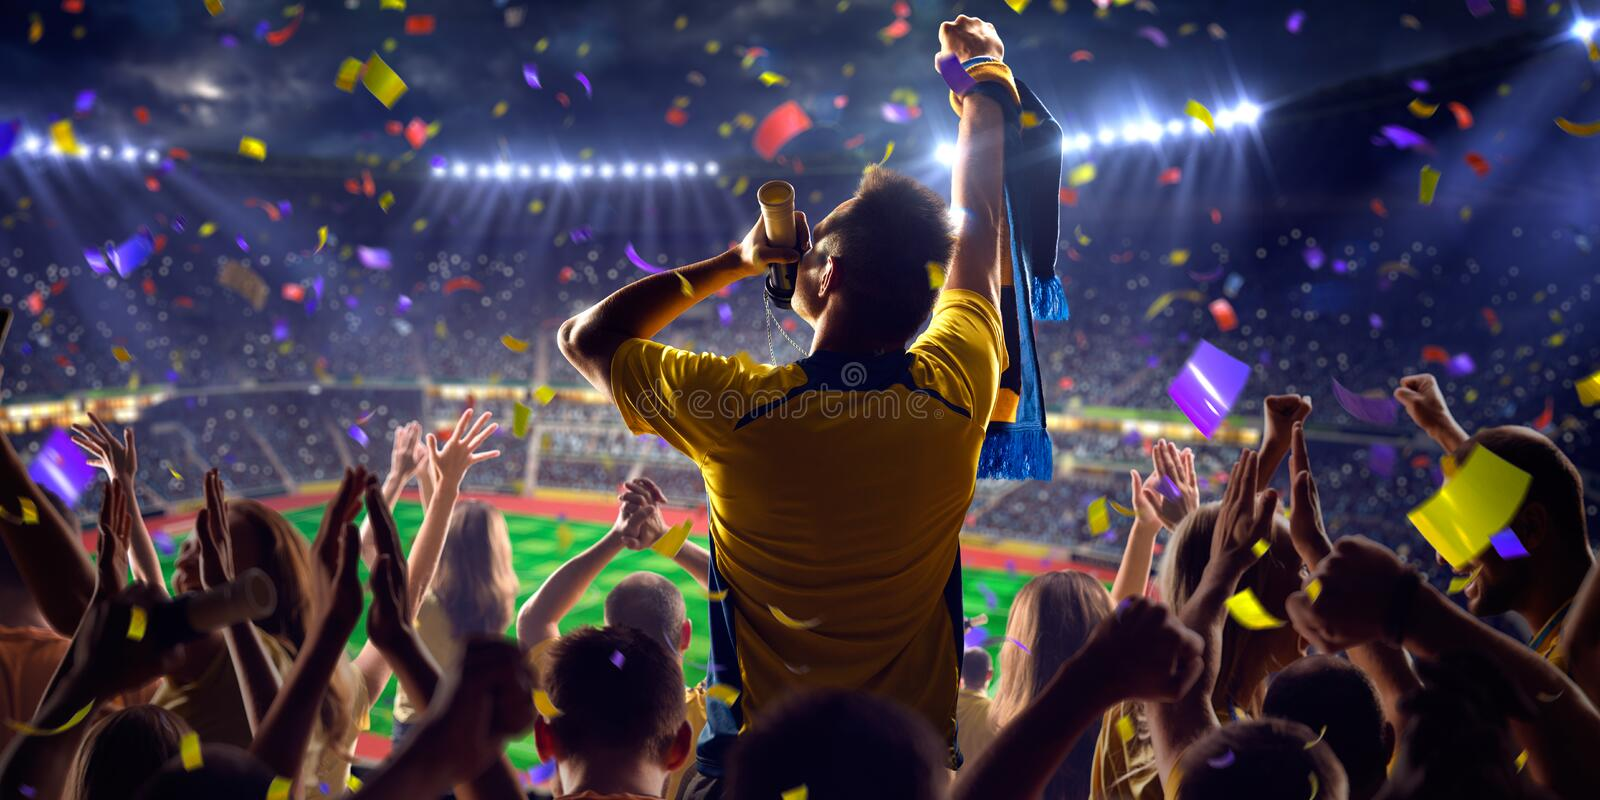 Fans on stadium game. Fans on stadium soccer game Confetti and tinsel stock photos